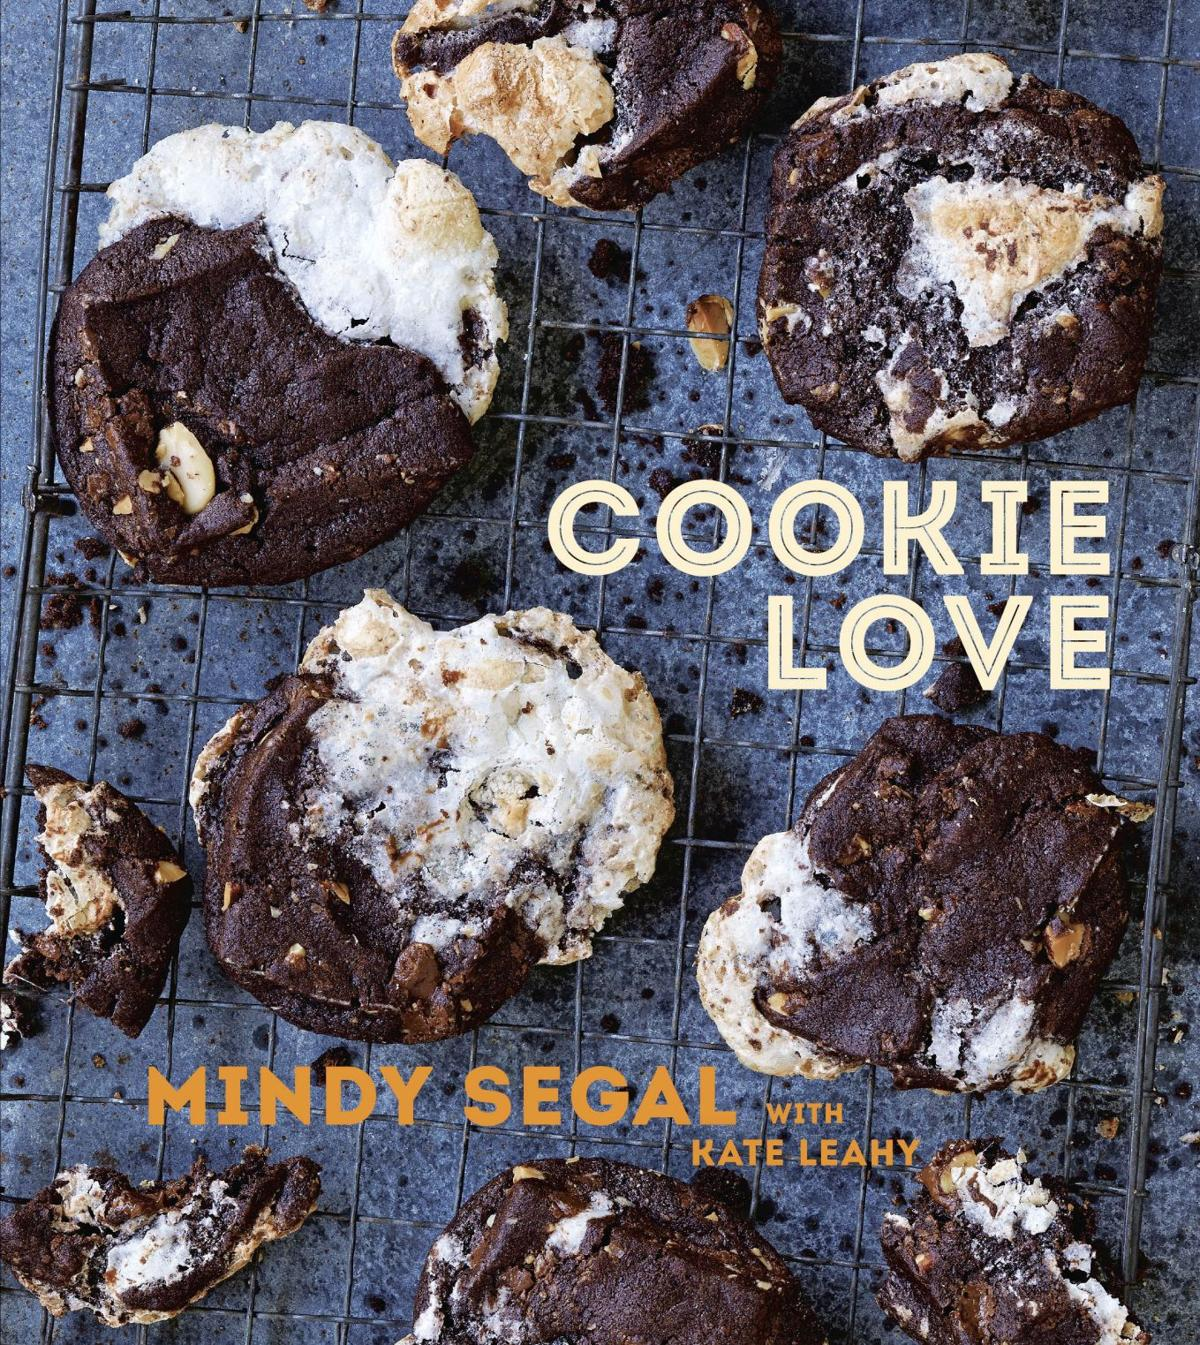 Books for cooks 'Cookie Love'